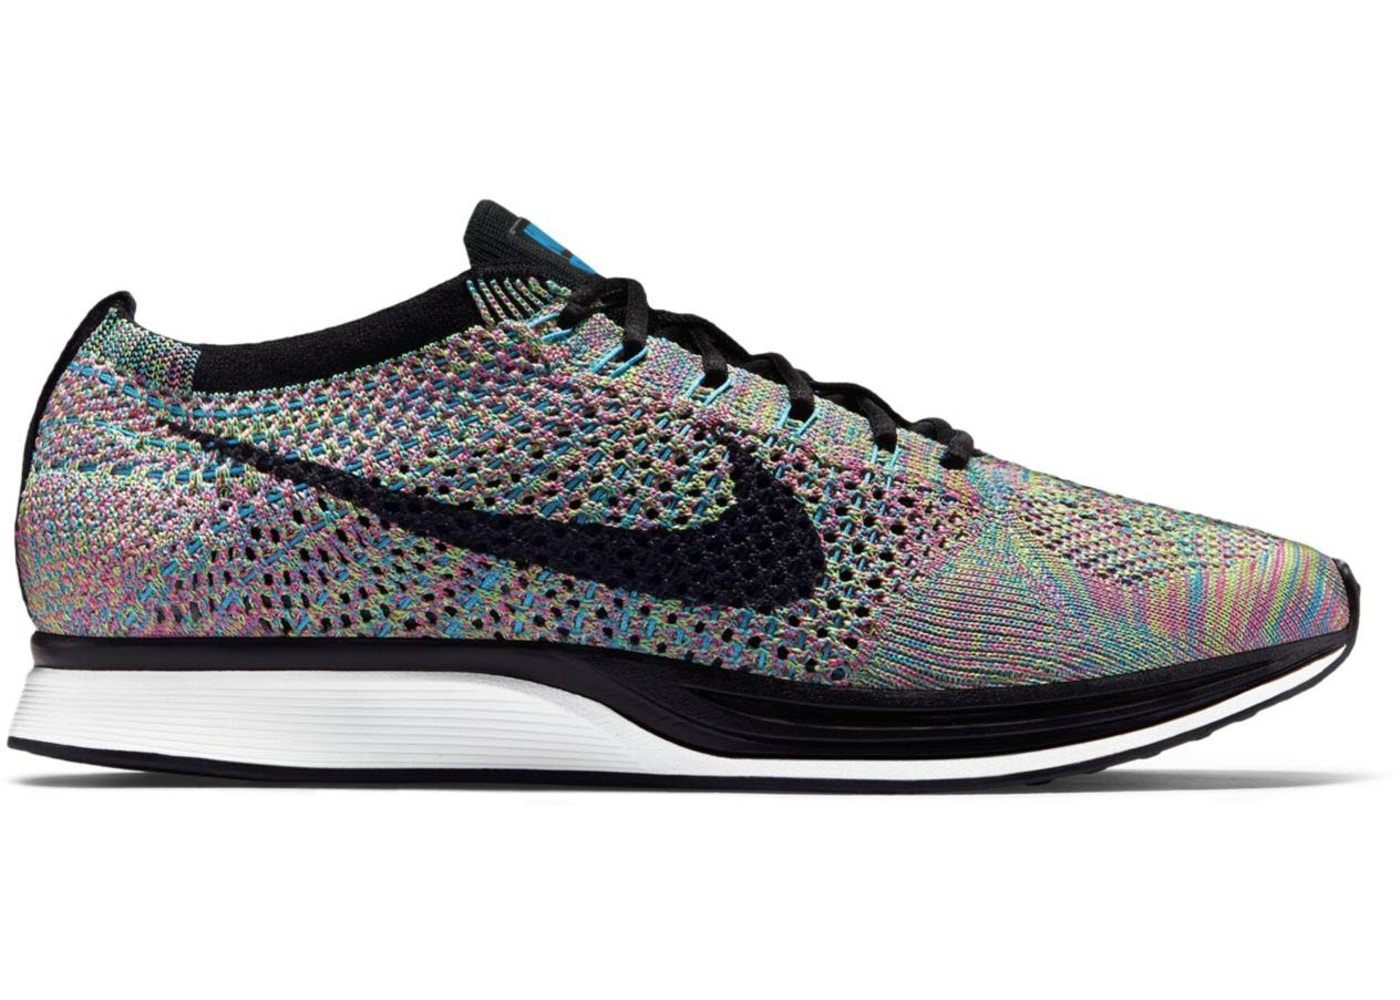 8ed1a36763752 Nike Flyknit Racer Multi-Color 2.0 (2015 2017) - 526628-304